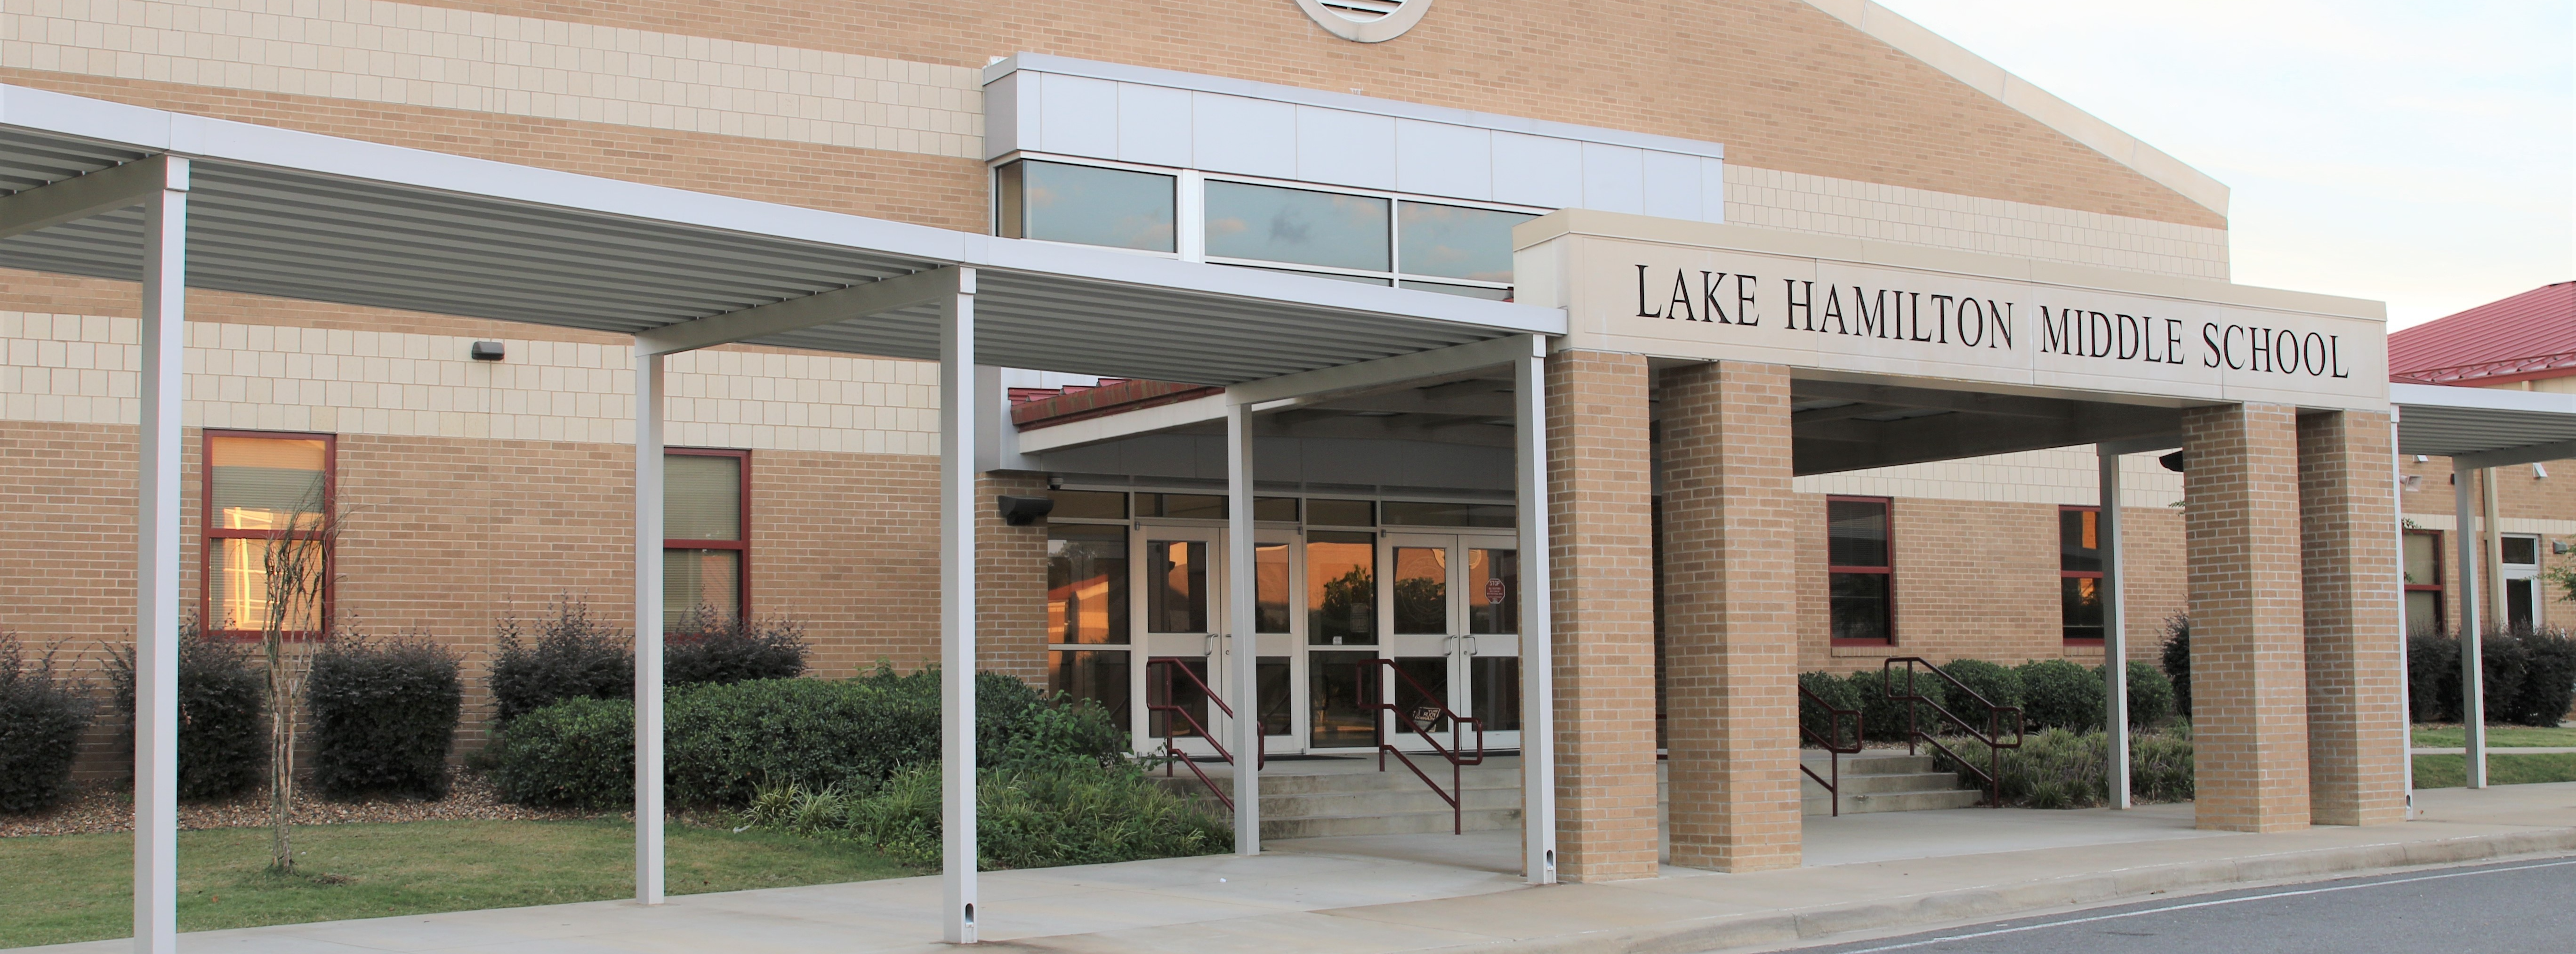 LH Middle School